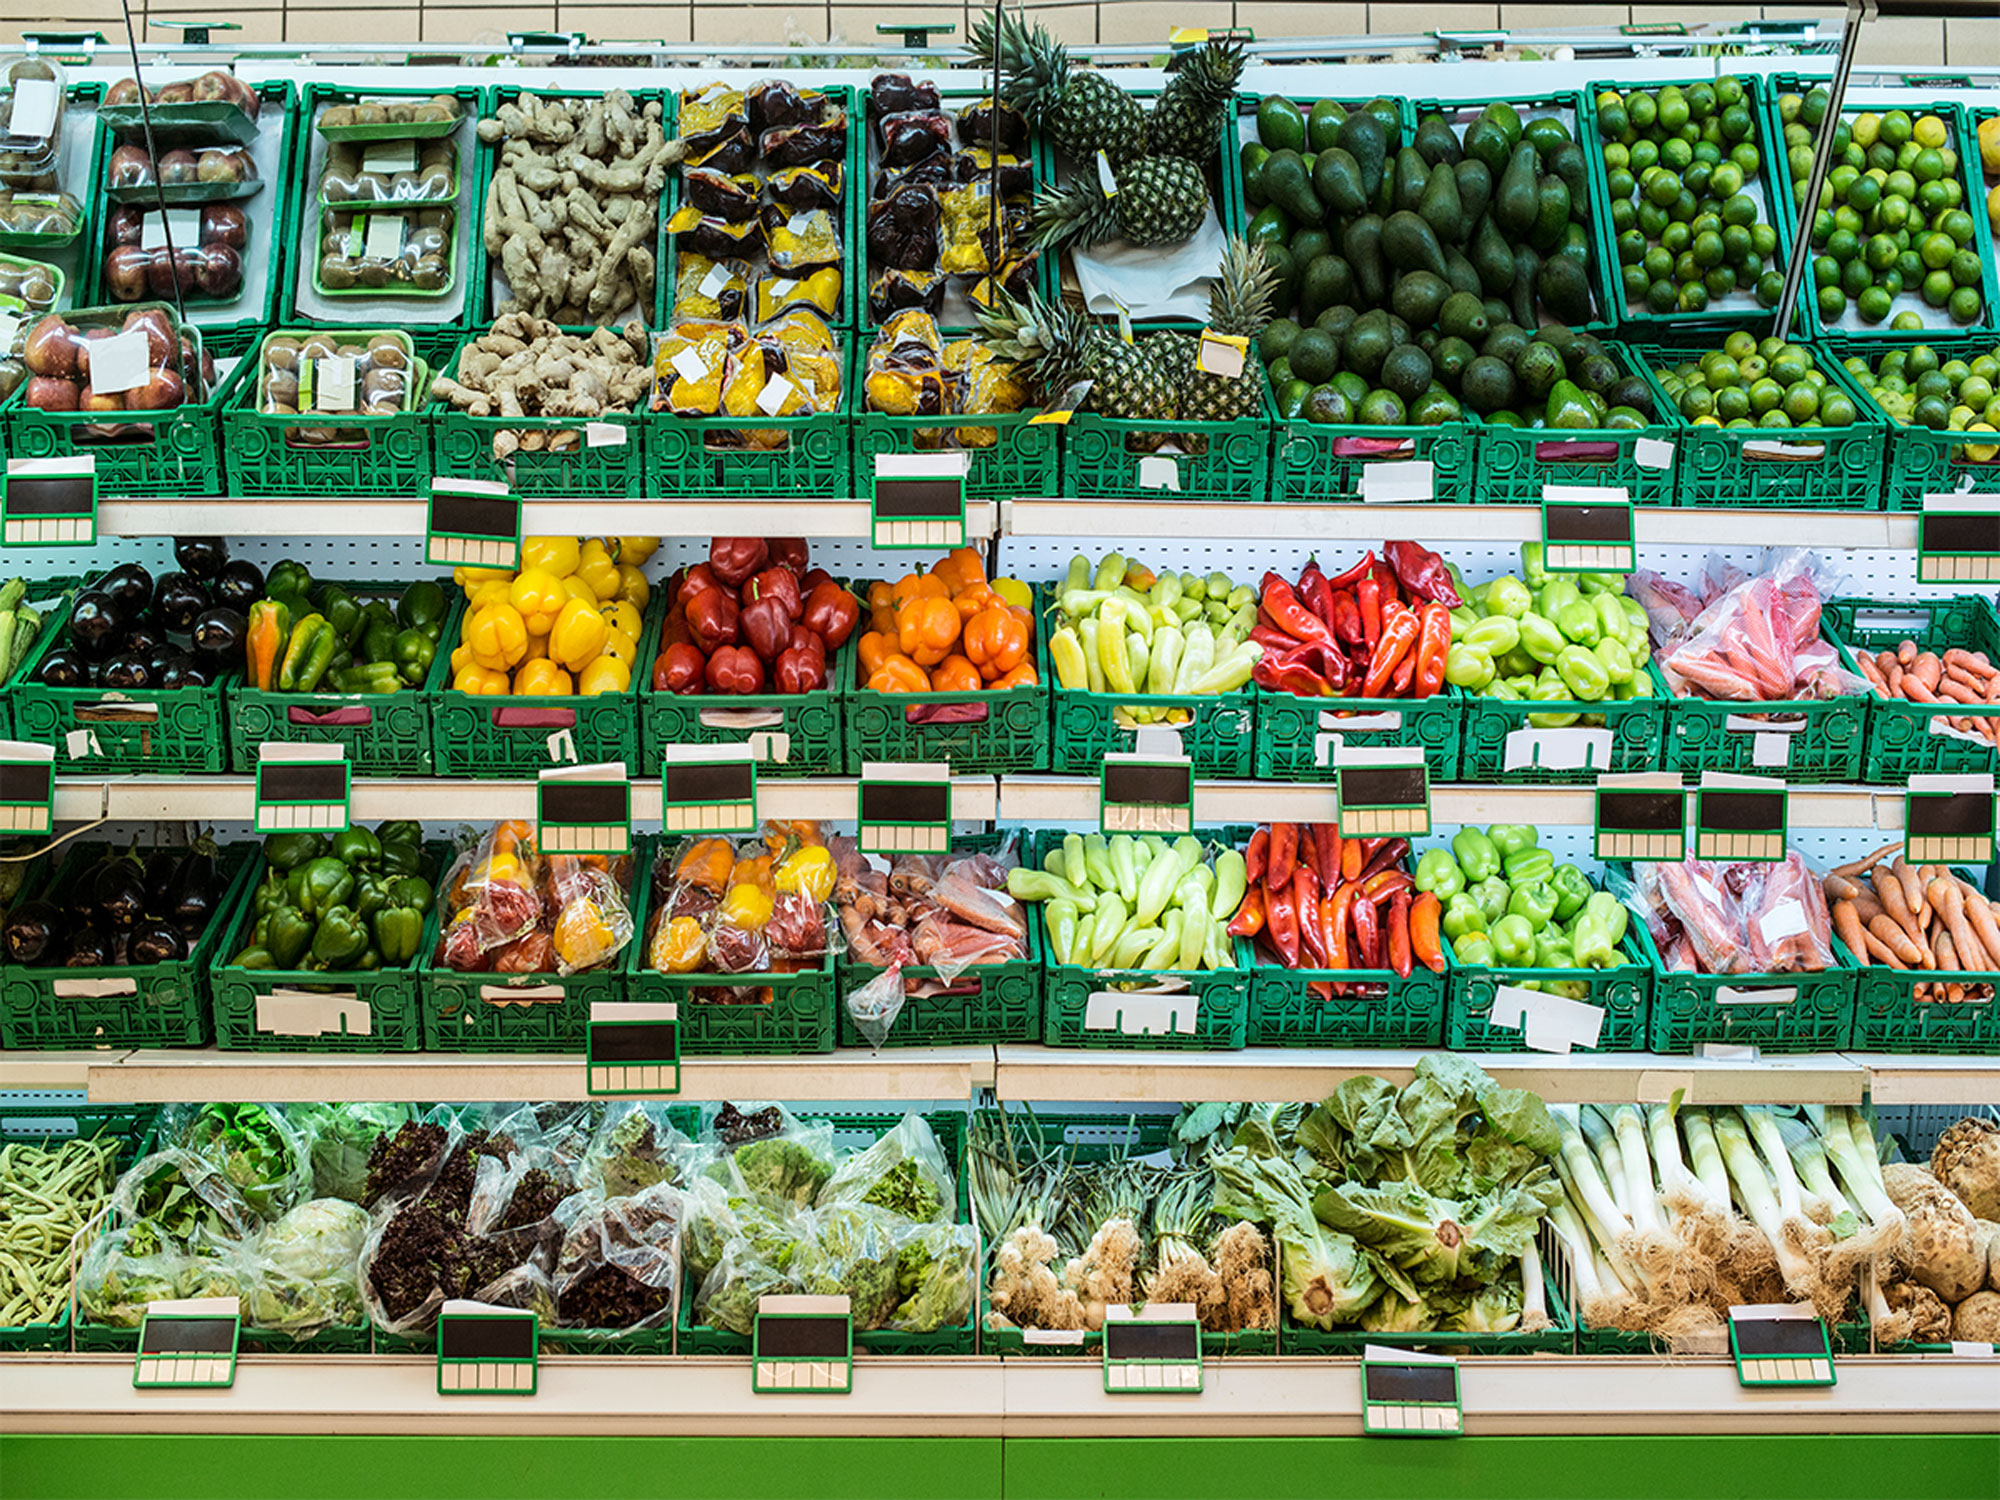 Produce Quality at Dollar Stores Is Just As Good, Study Says